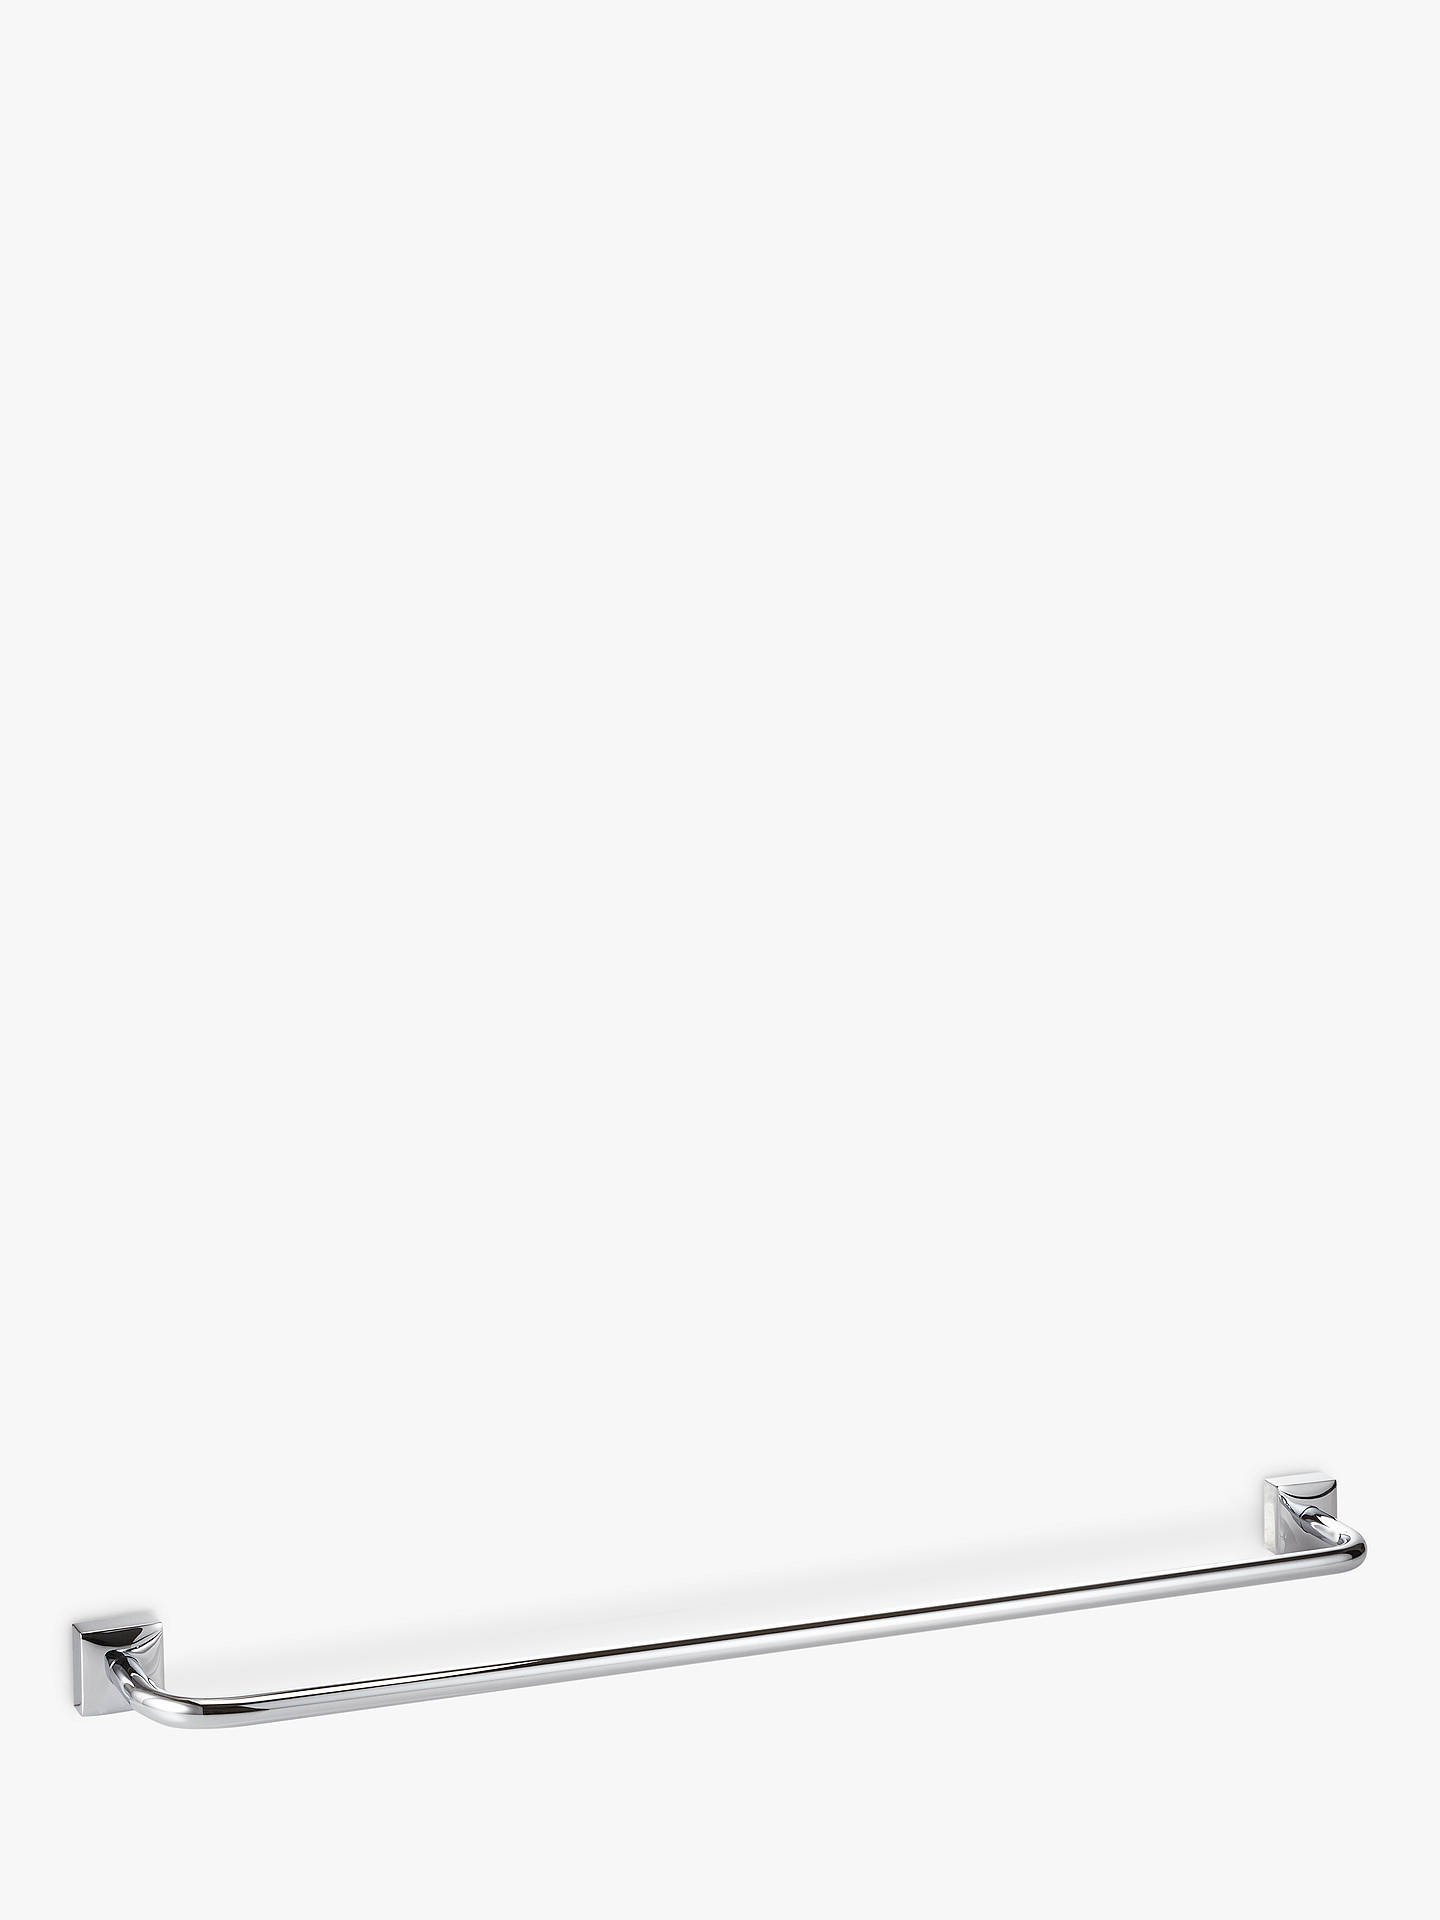 BuyJohn Lewis & Partners Pure Bathroom Towel Rail, Chrome Online at johnlewis.com